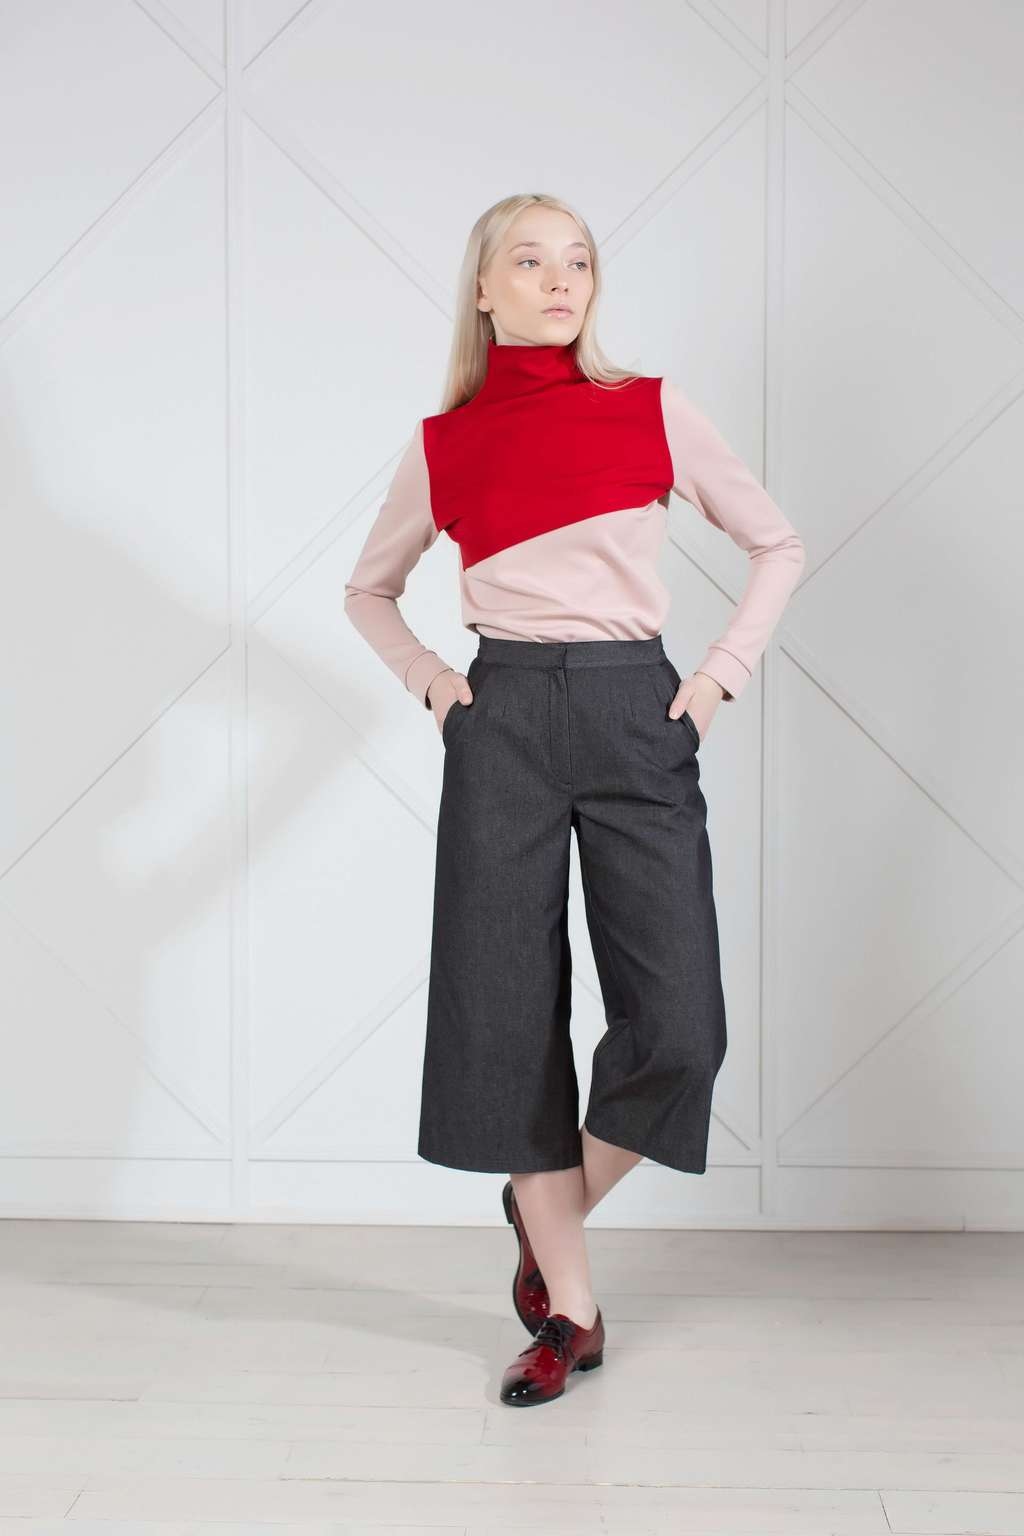 Two-tone color block knit turtleneck top